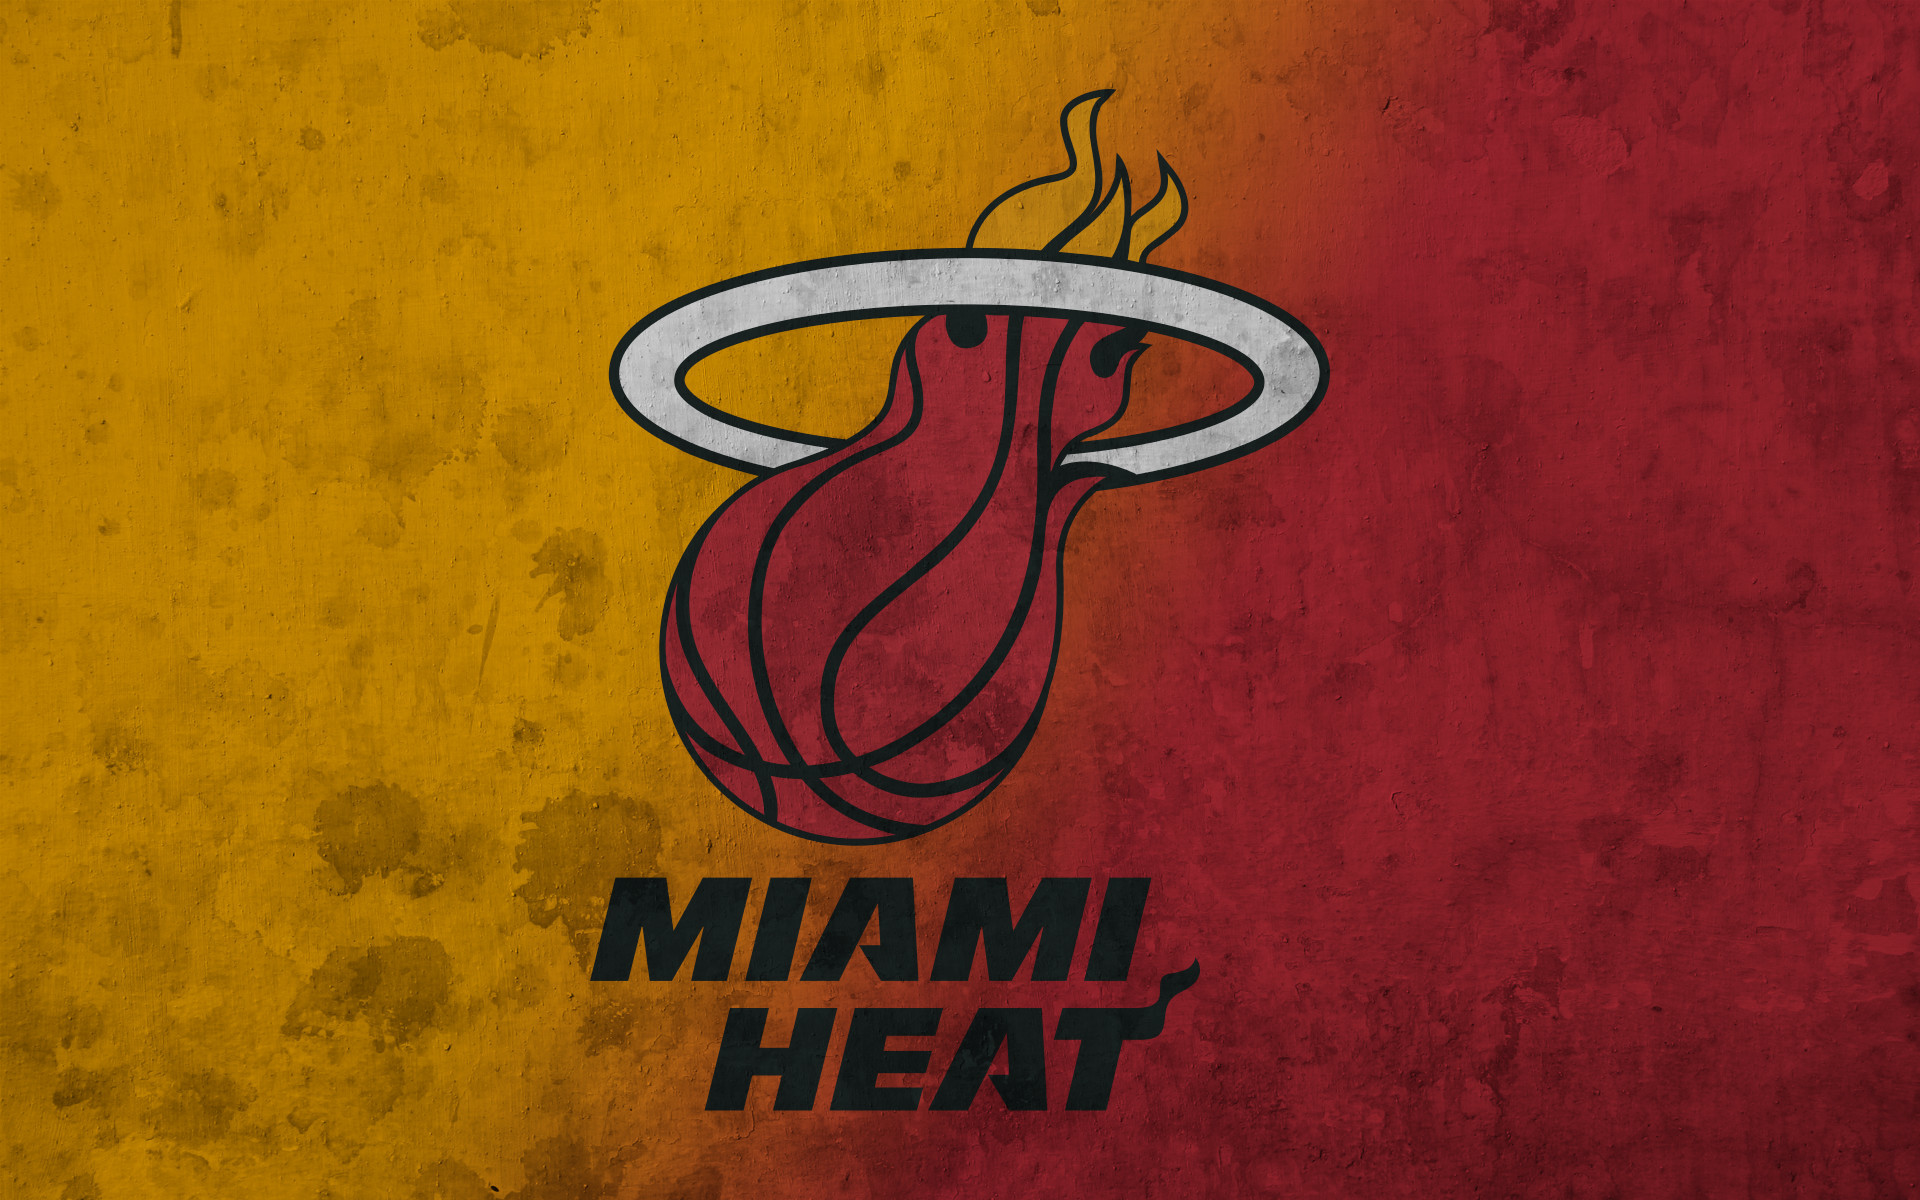 Miami Heat Wallpapers 2018 71 images 1920x1200